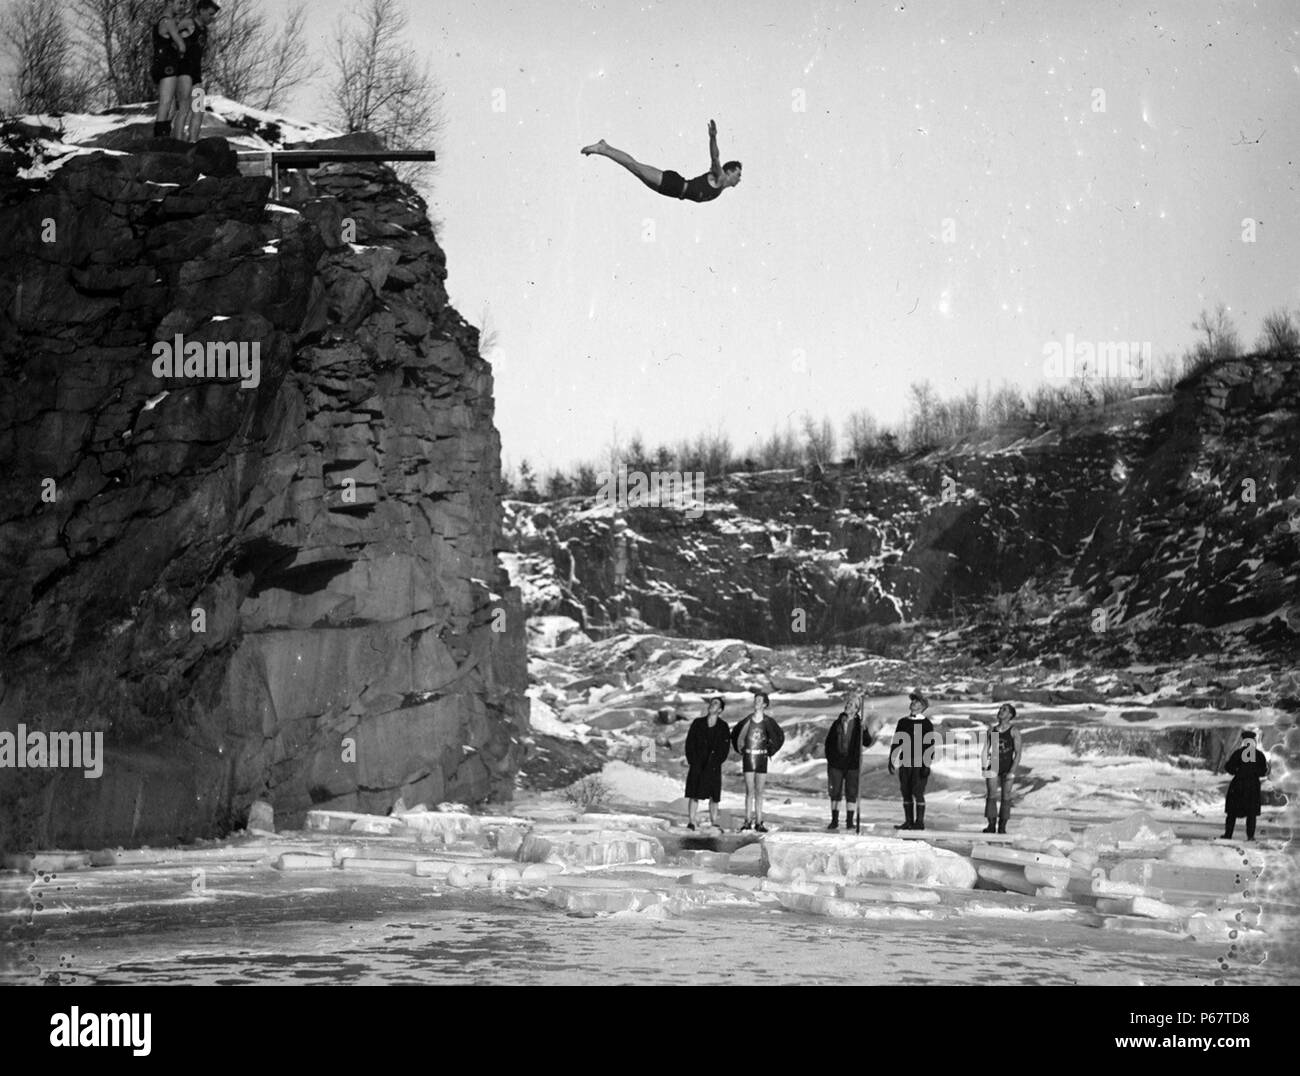 Photograph of Brownies diving into icy water, Manchester. Photographed by Leslie Jones (1886-1967) a Boston, Massachusetts photographer who worked for Boston Herald-Traveller newspaper. Dated 1930 - Stock Image